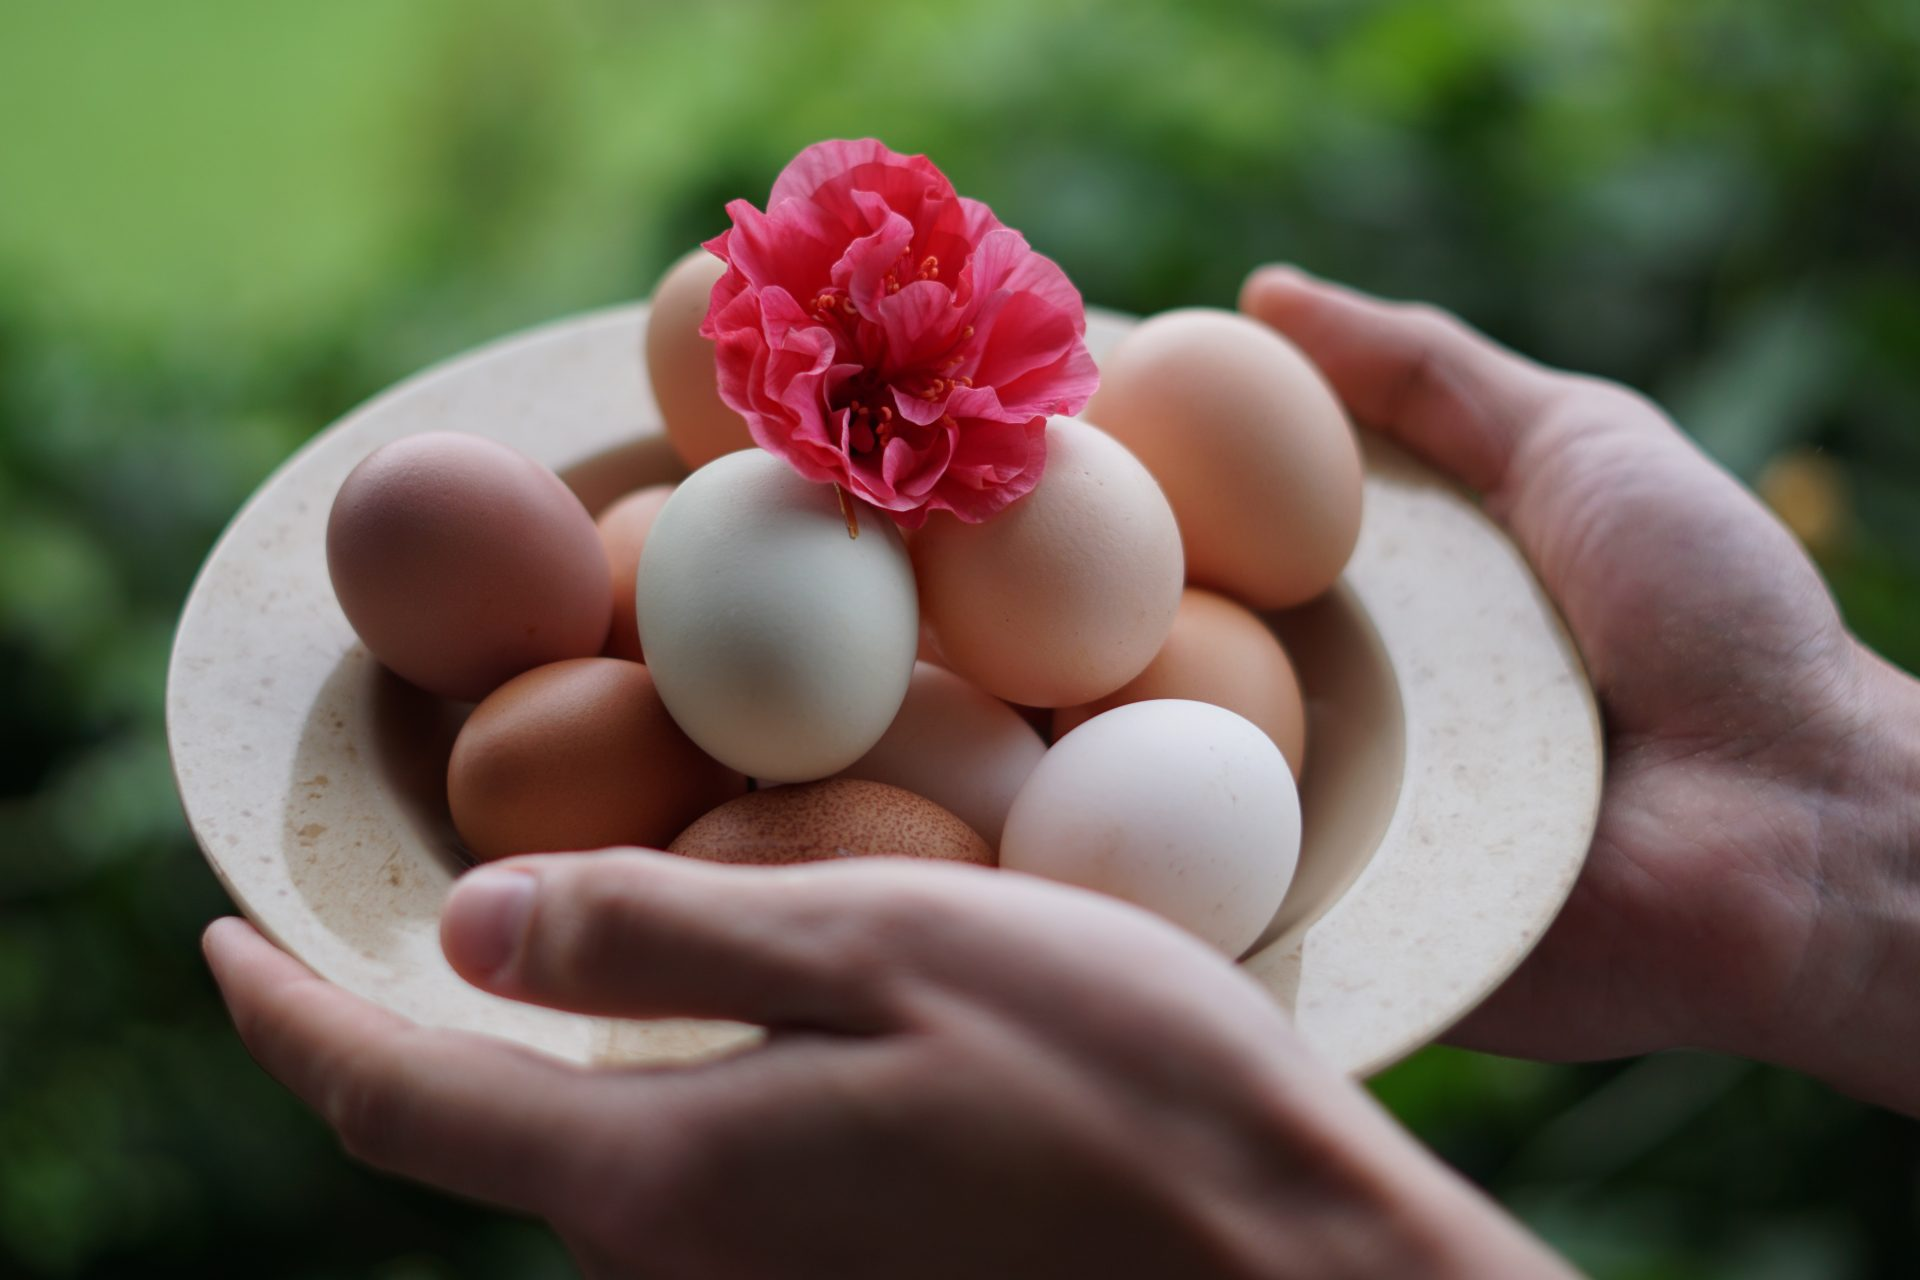 """Eggs produce a """"ying"""" effect which nourishes the blood and strengthens the brain. (Image Credit: Unsplash / CC0 1.0)"""